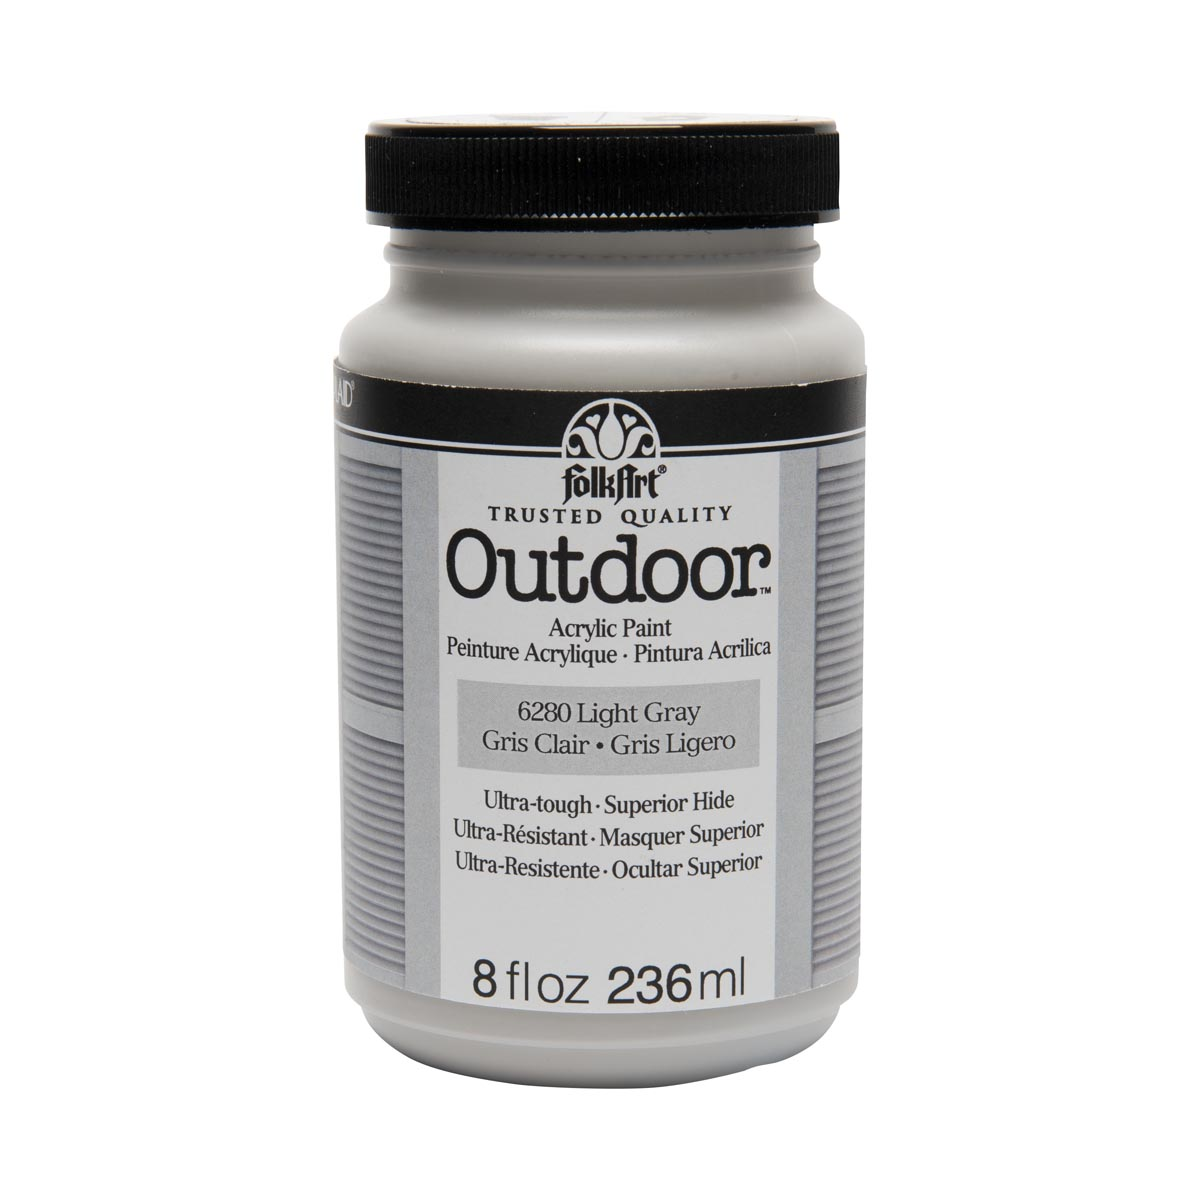 FolkArt ® Outdoor™ Acrylic Colors - Light Gray, 8 oz. - 6280